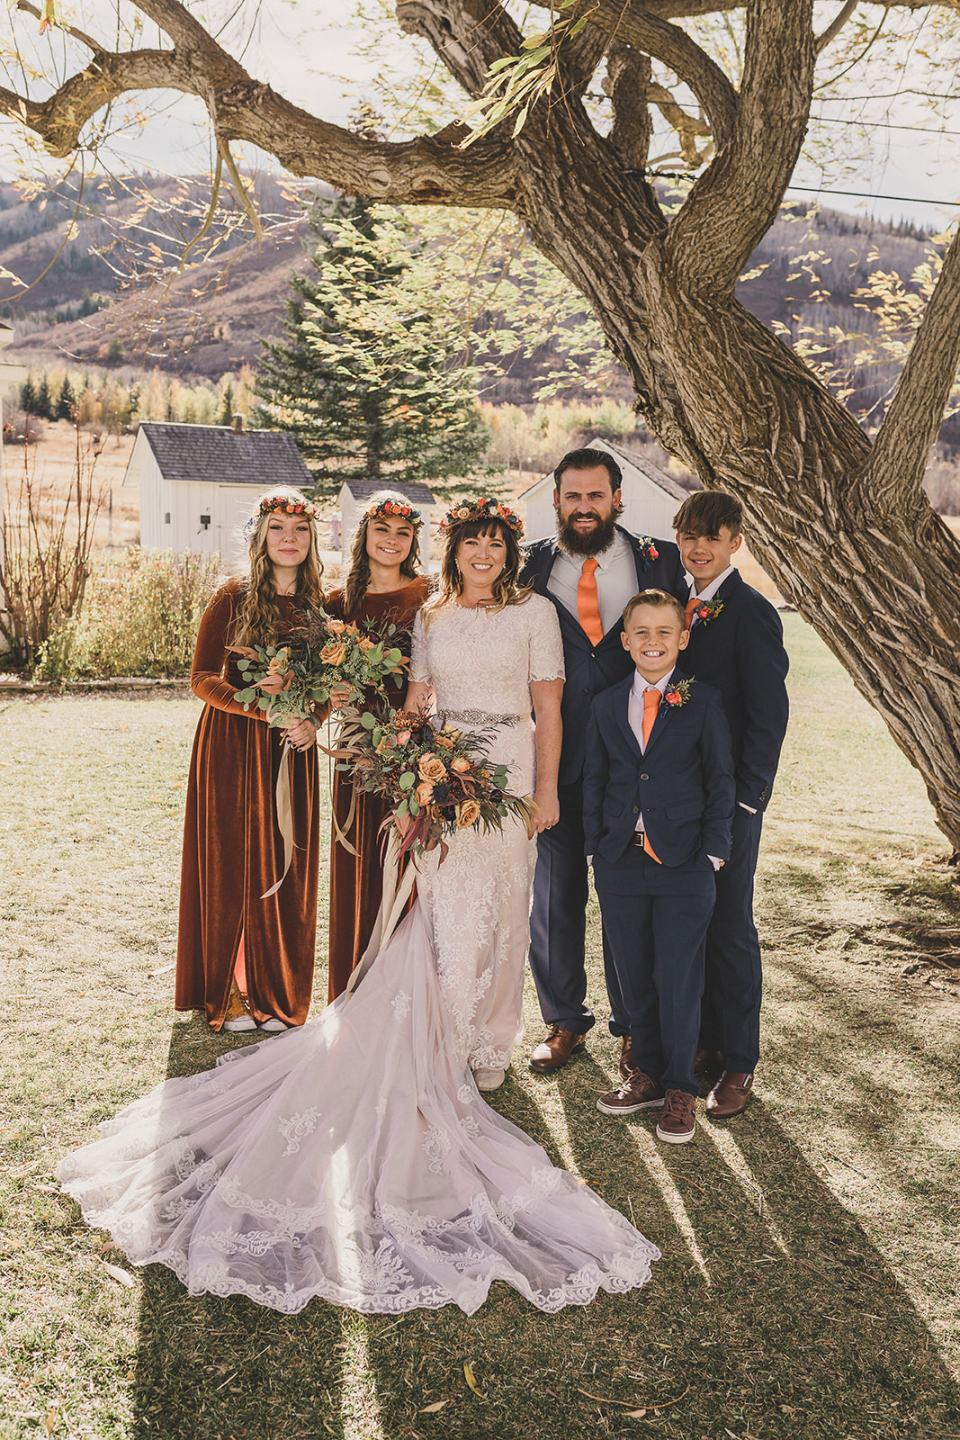 new family poses together after Utah elopement